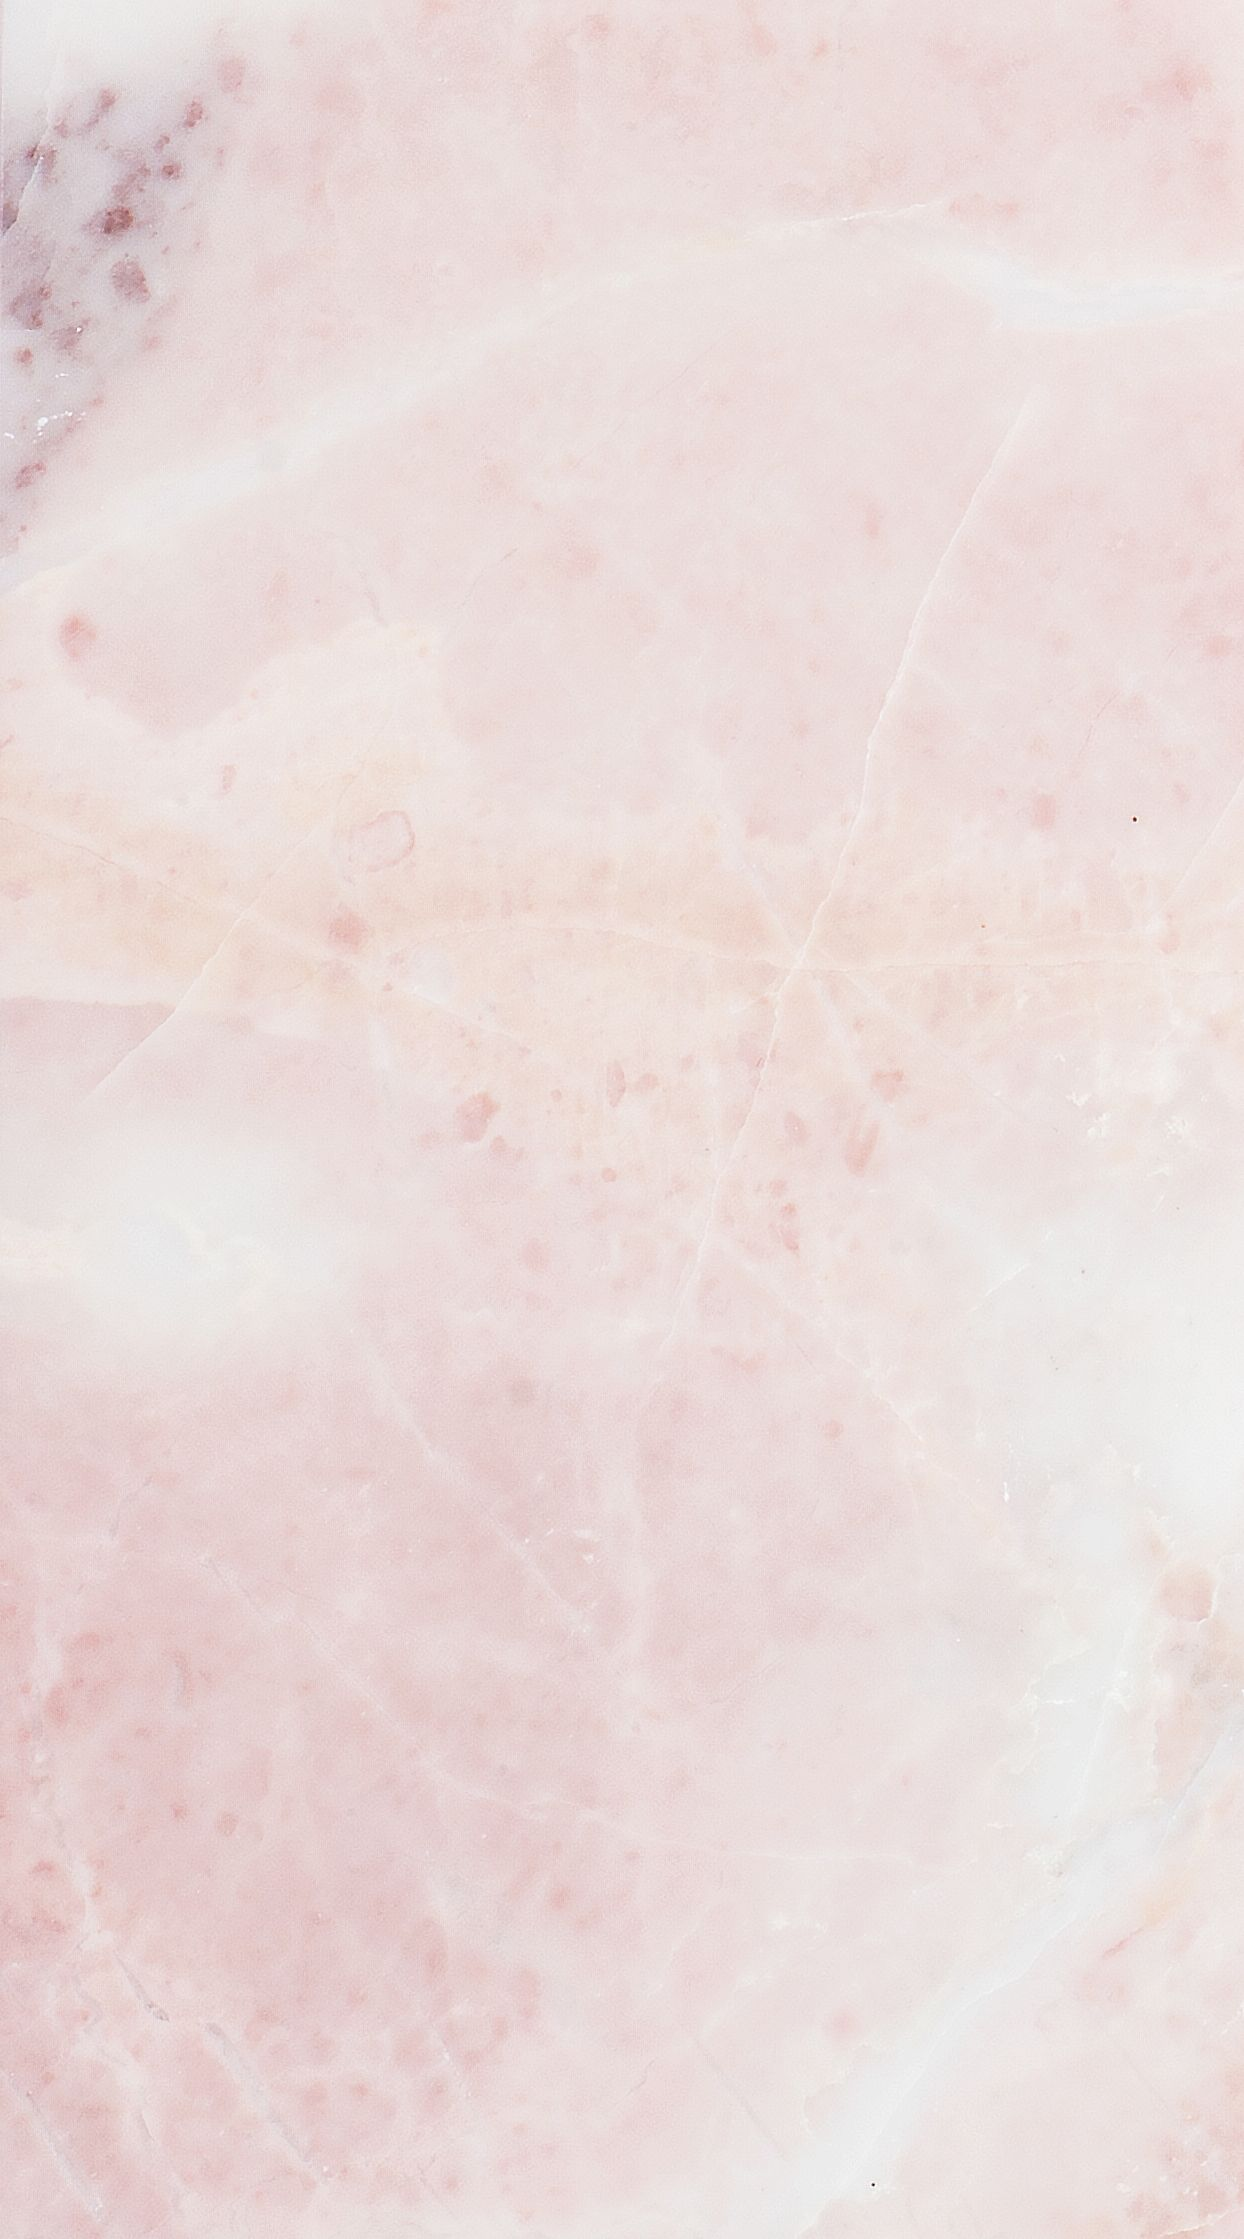 Marble And Pink Chevron Wallpaper Marble Iphone Wallpaper Pink Chevron Wallpaper Chevron Wallpaper